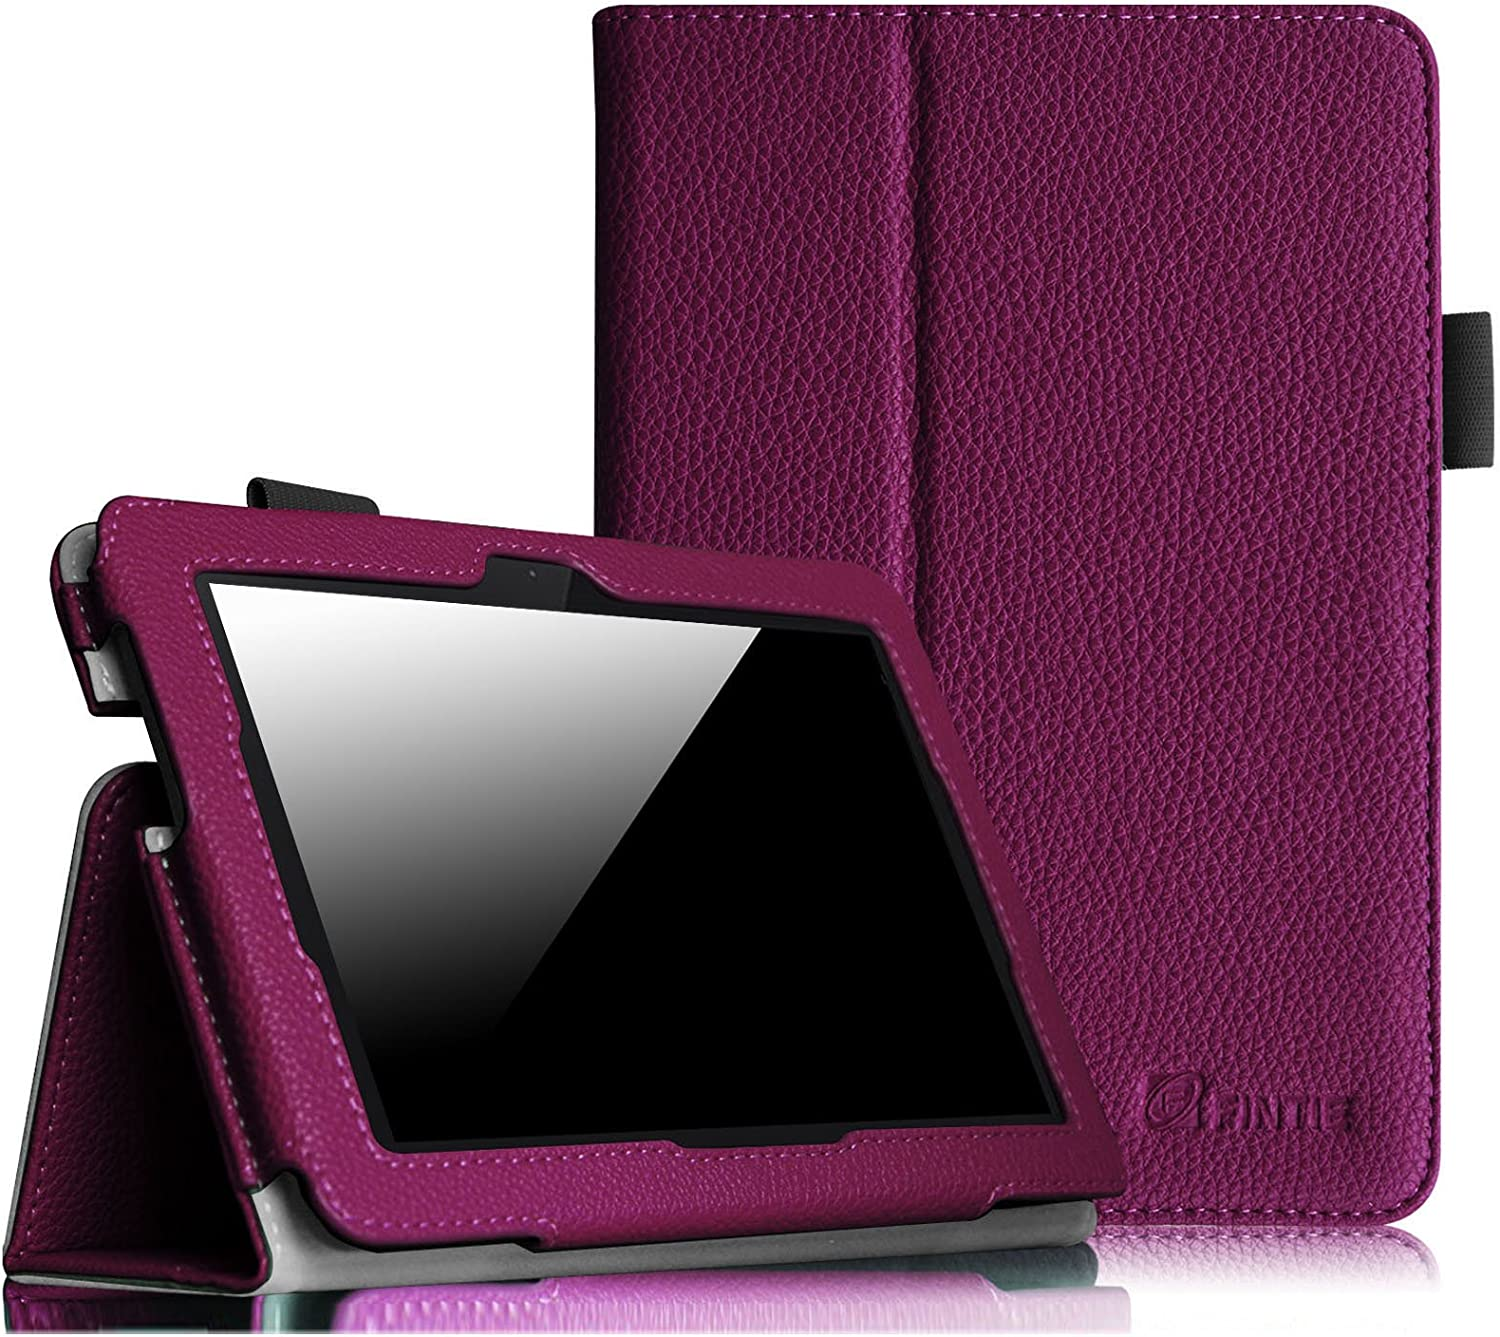 Amazon Com Fintie Folio Case For Fire Hdx 7 Slim Fit Leather Standing Protective Cover With Auto Sleep Wake Will Only Fit Kindle Fire Hdx 7 2013 Purple Kindle Store